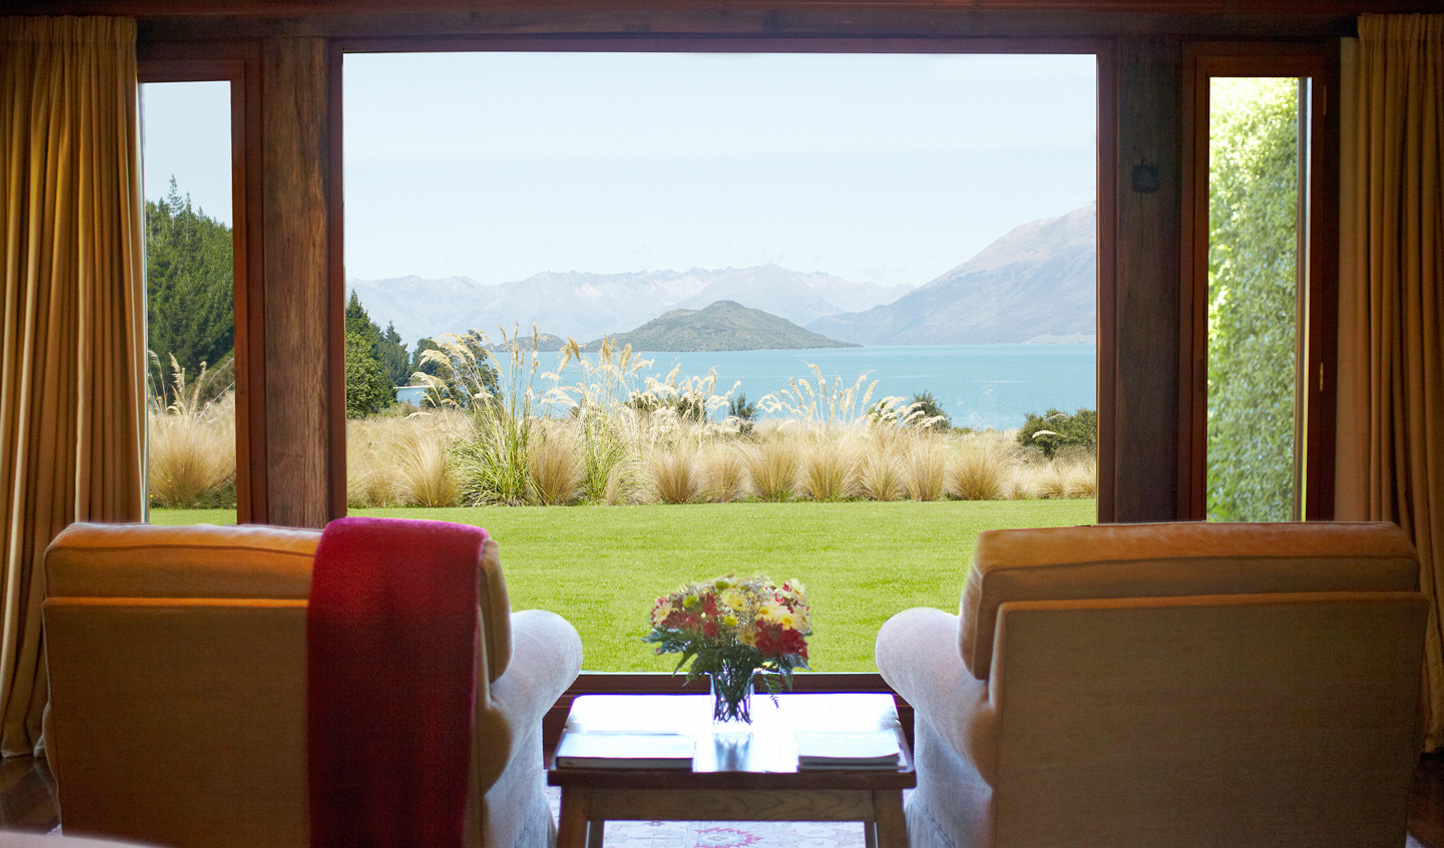 Jaw-dropping views from your very own chalet